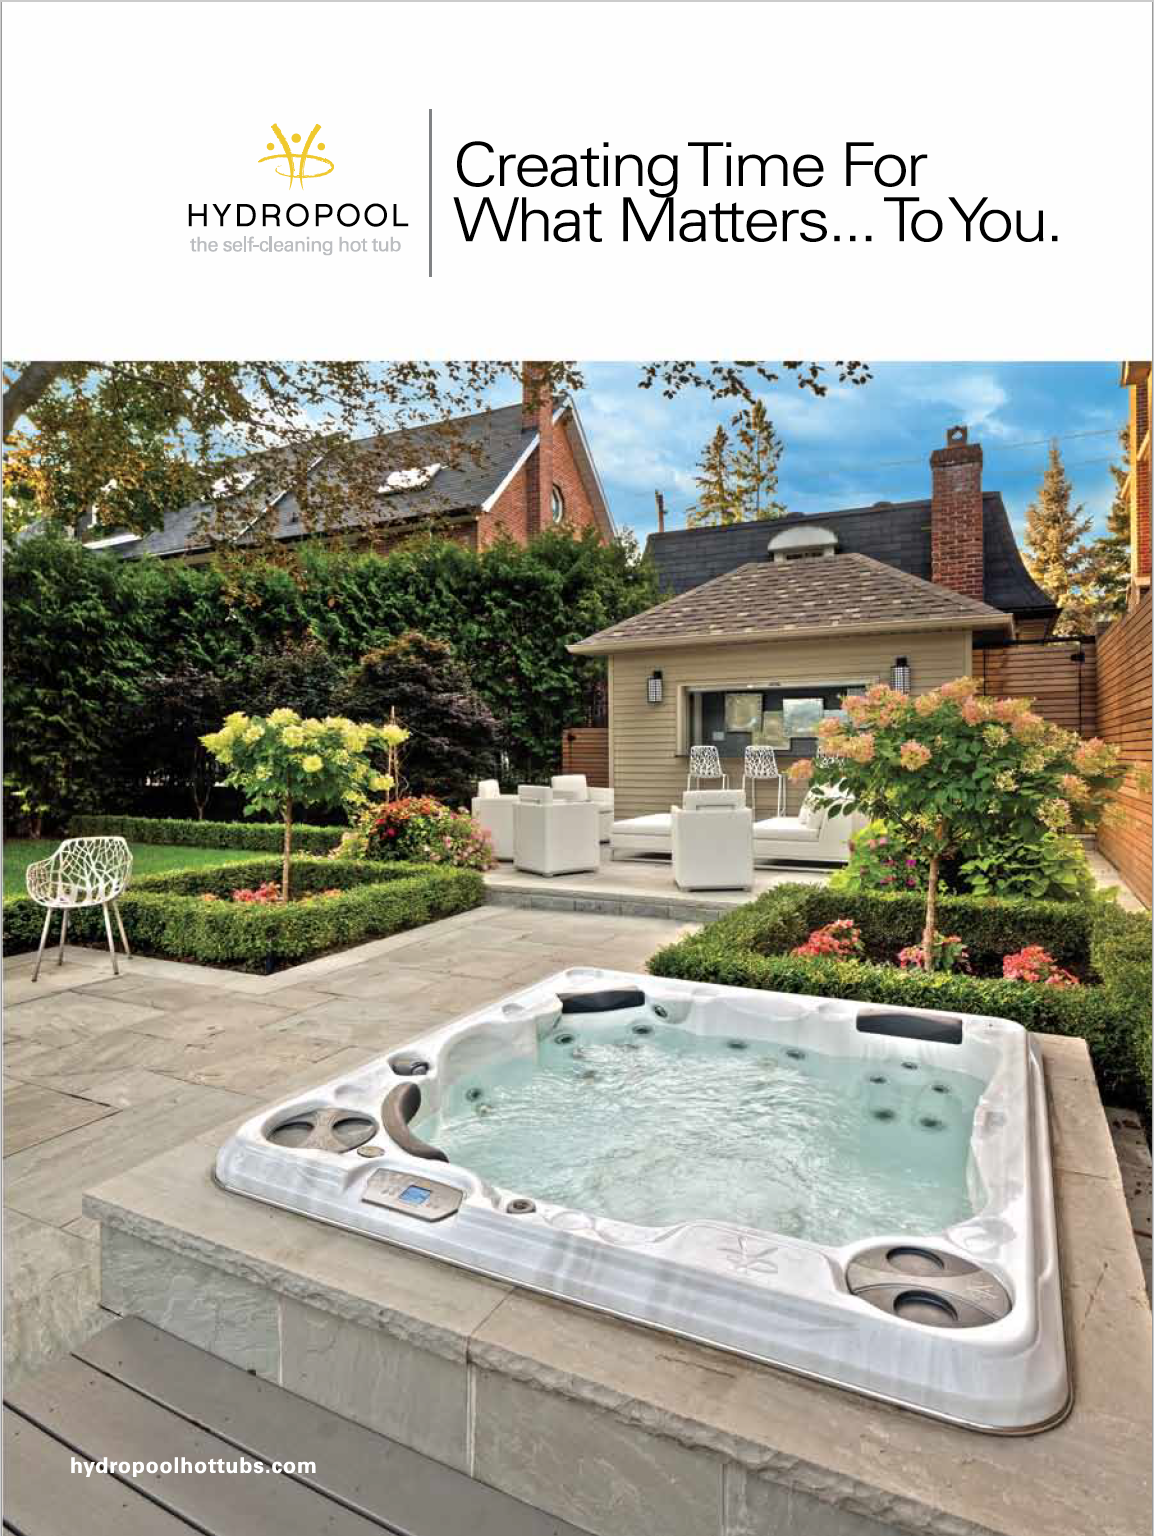 Self-Cleaning-Hot-Tub-Brochure